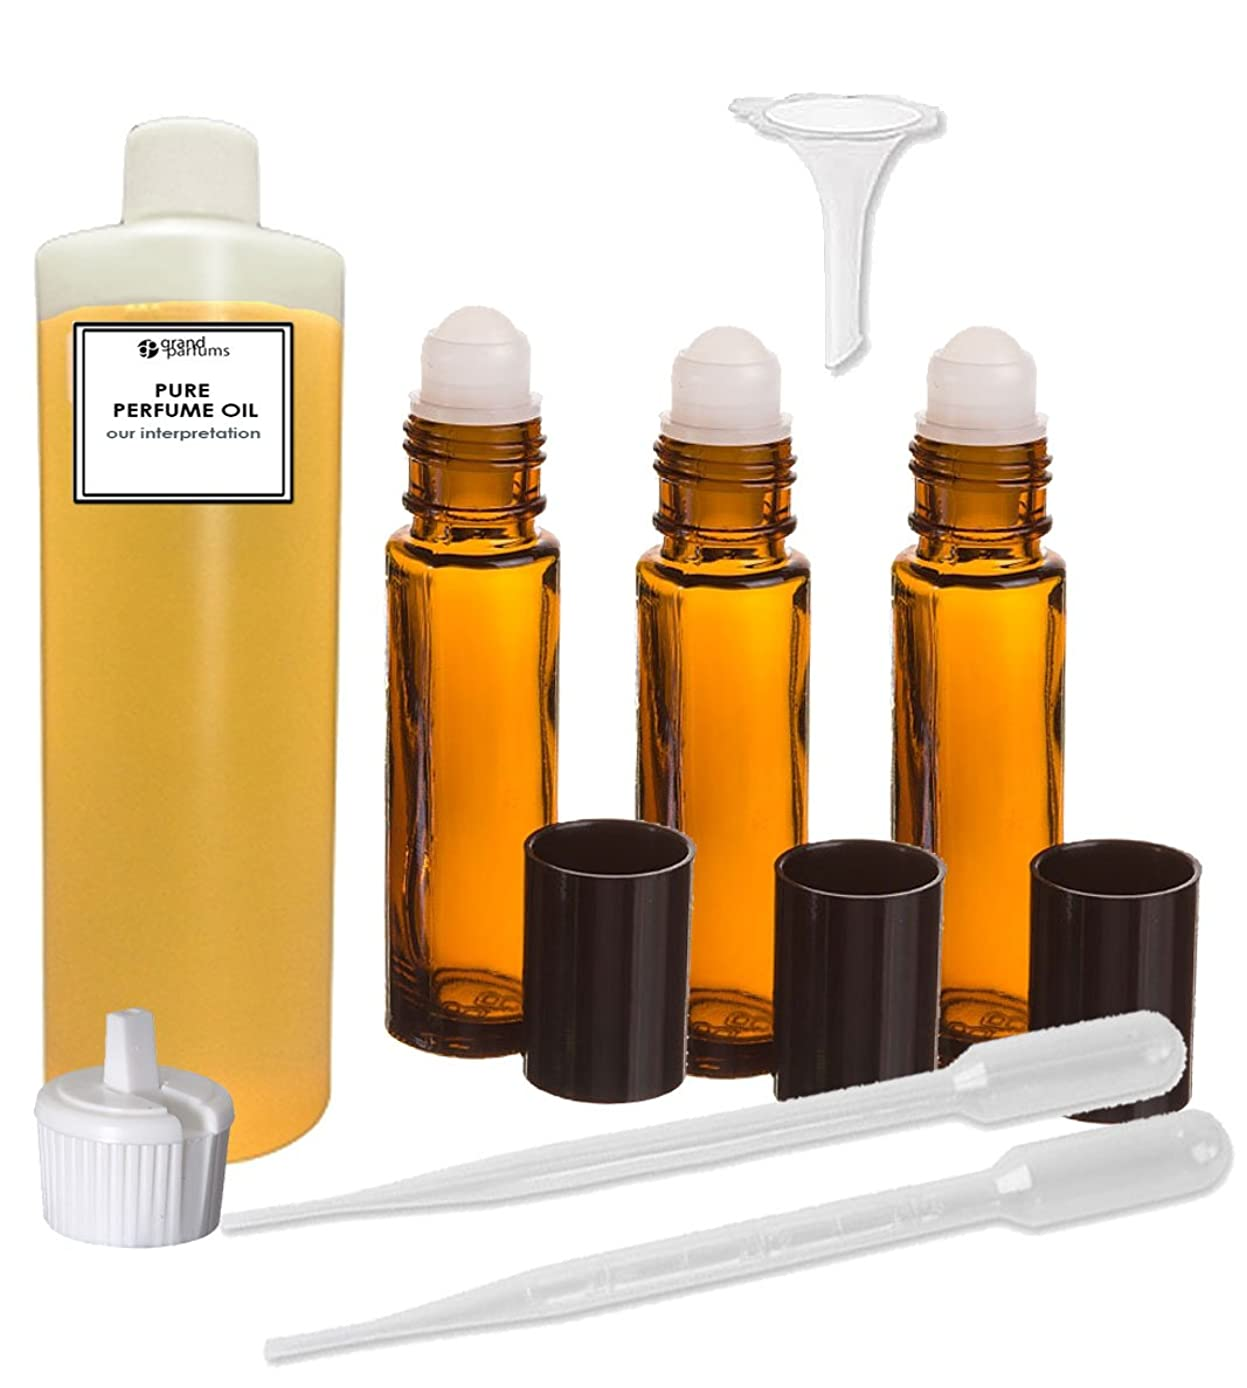 Grand Parfums Perfume Oil Set - Egyptian Musk Body Oil Scented Fragrance Oil - Our Interpretation, with Roll On Bottles and Tools to Fill Them (4 Oz)